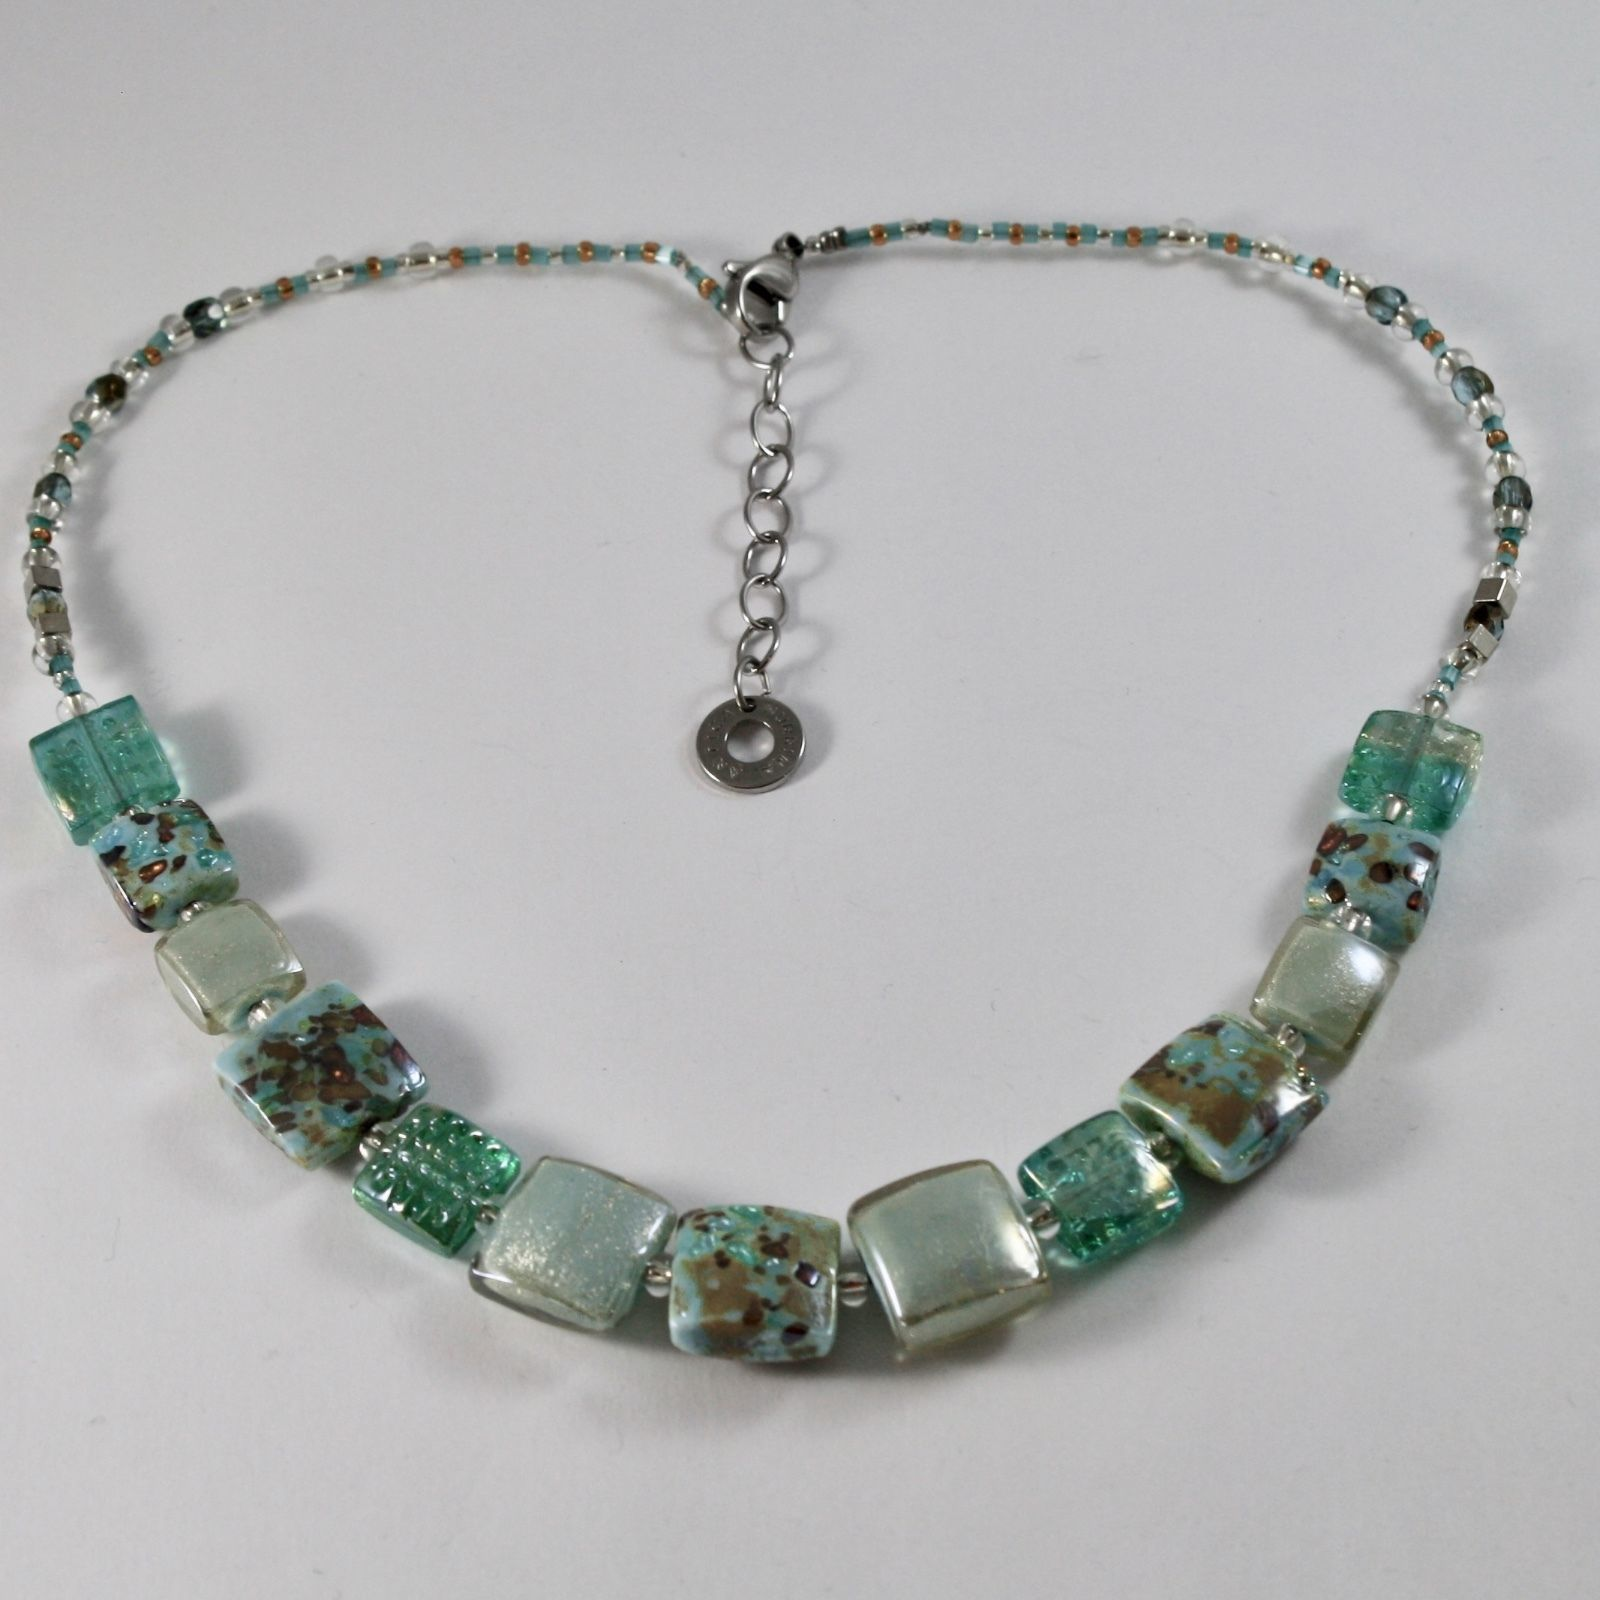 NECKLACE ANTICA MURRINA VENEZIA MURANO GLASS, SQUARES GREEN GRAY ADJUSTABLE